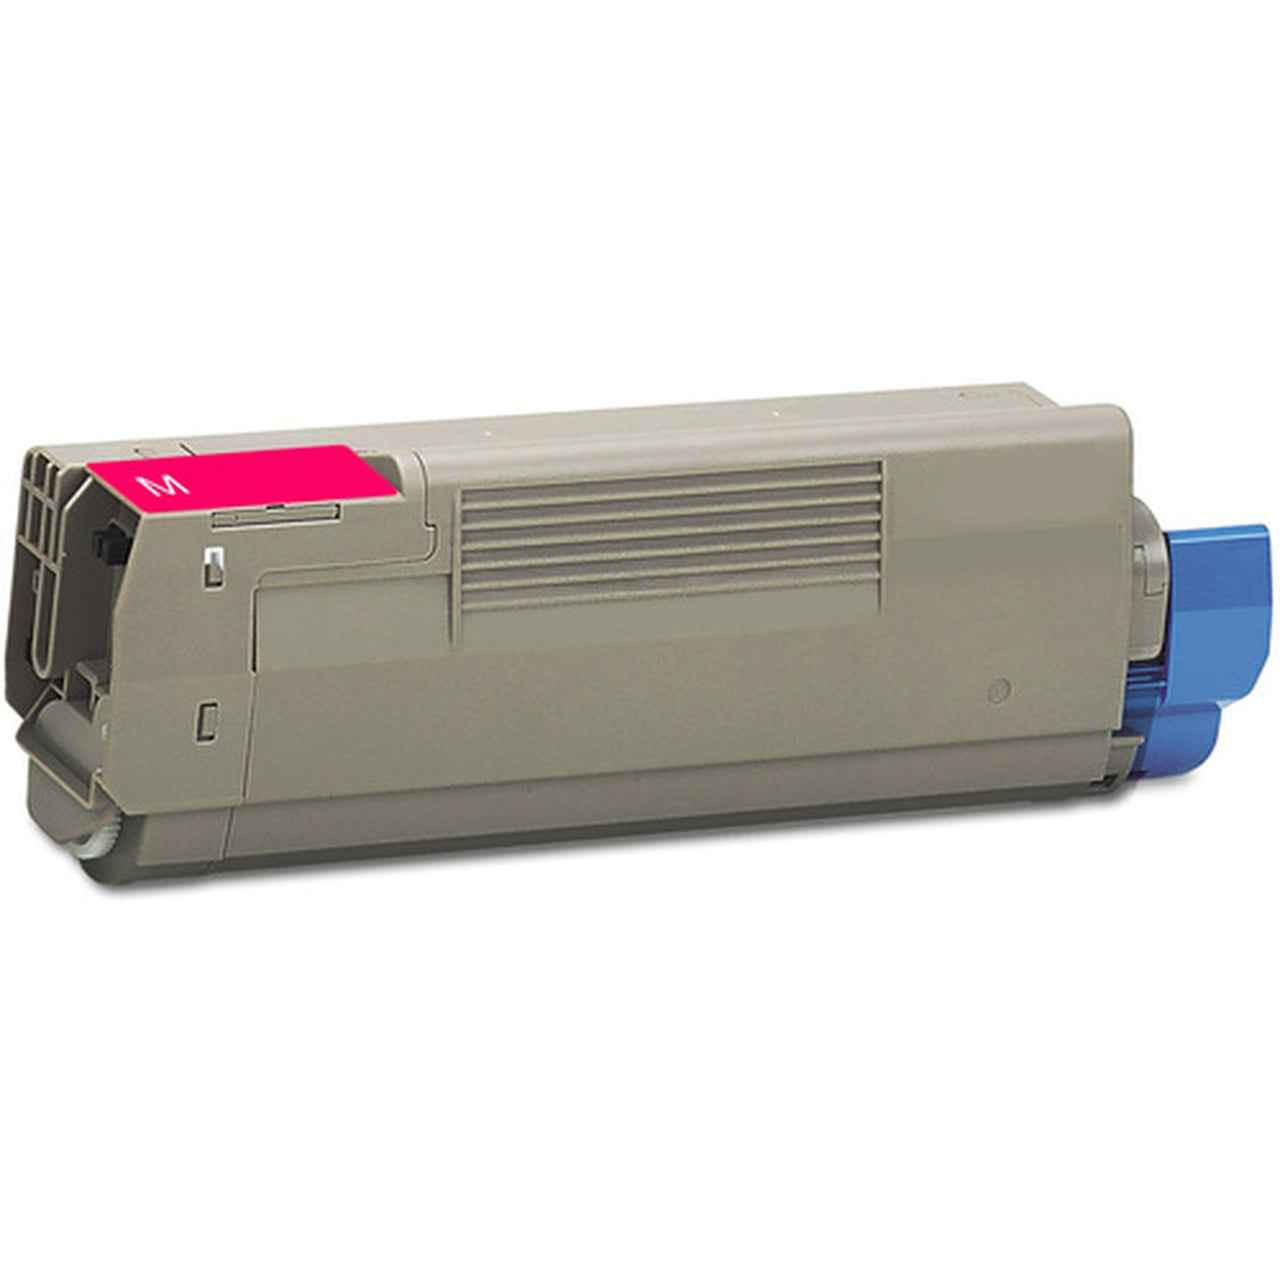 43324418 Toner Cartridge - Okidata New Compatible  (Magenta)